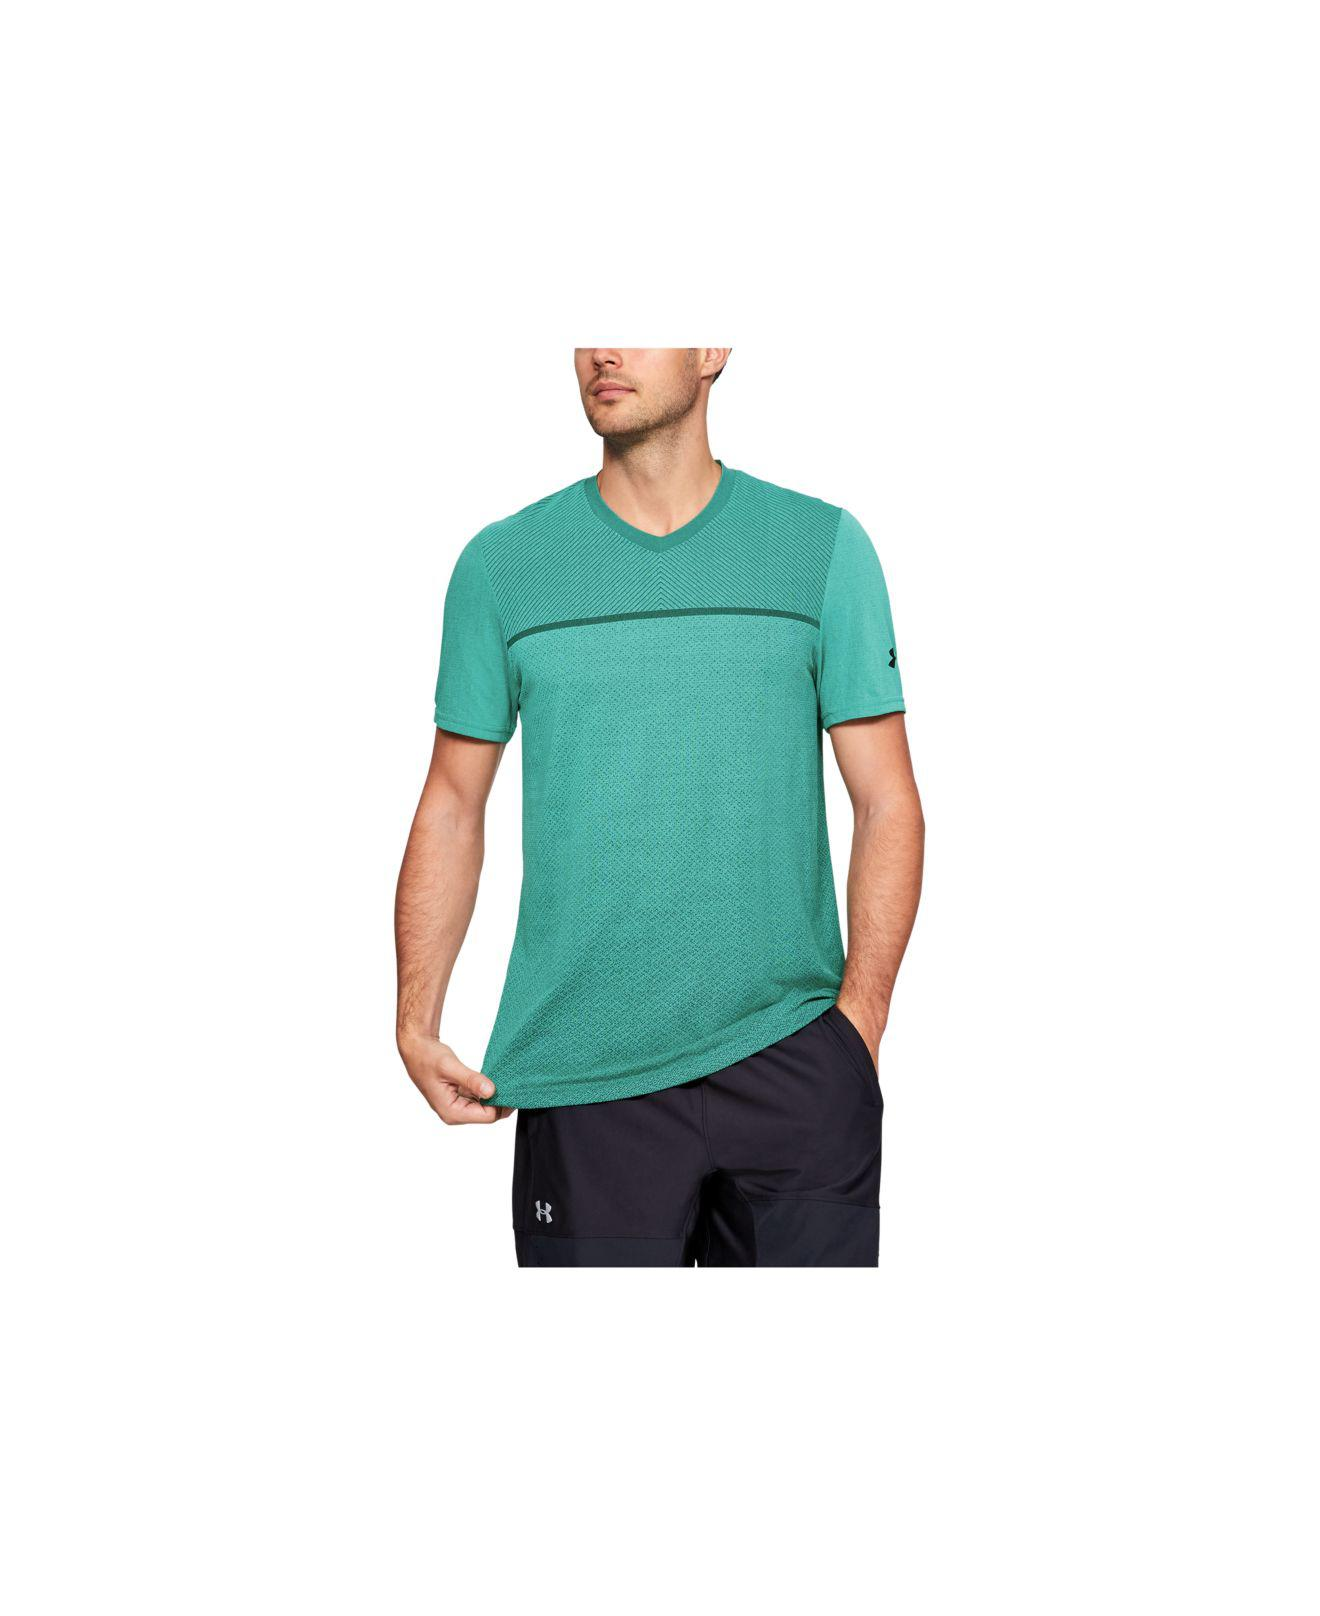 435c01d7 Lyst - Under Armour Siphon Short Sleeve V-neck in Green for Men ...